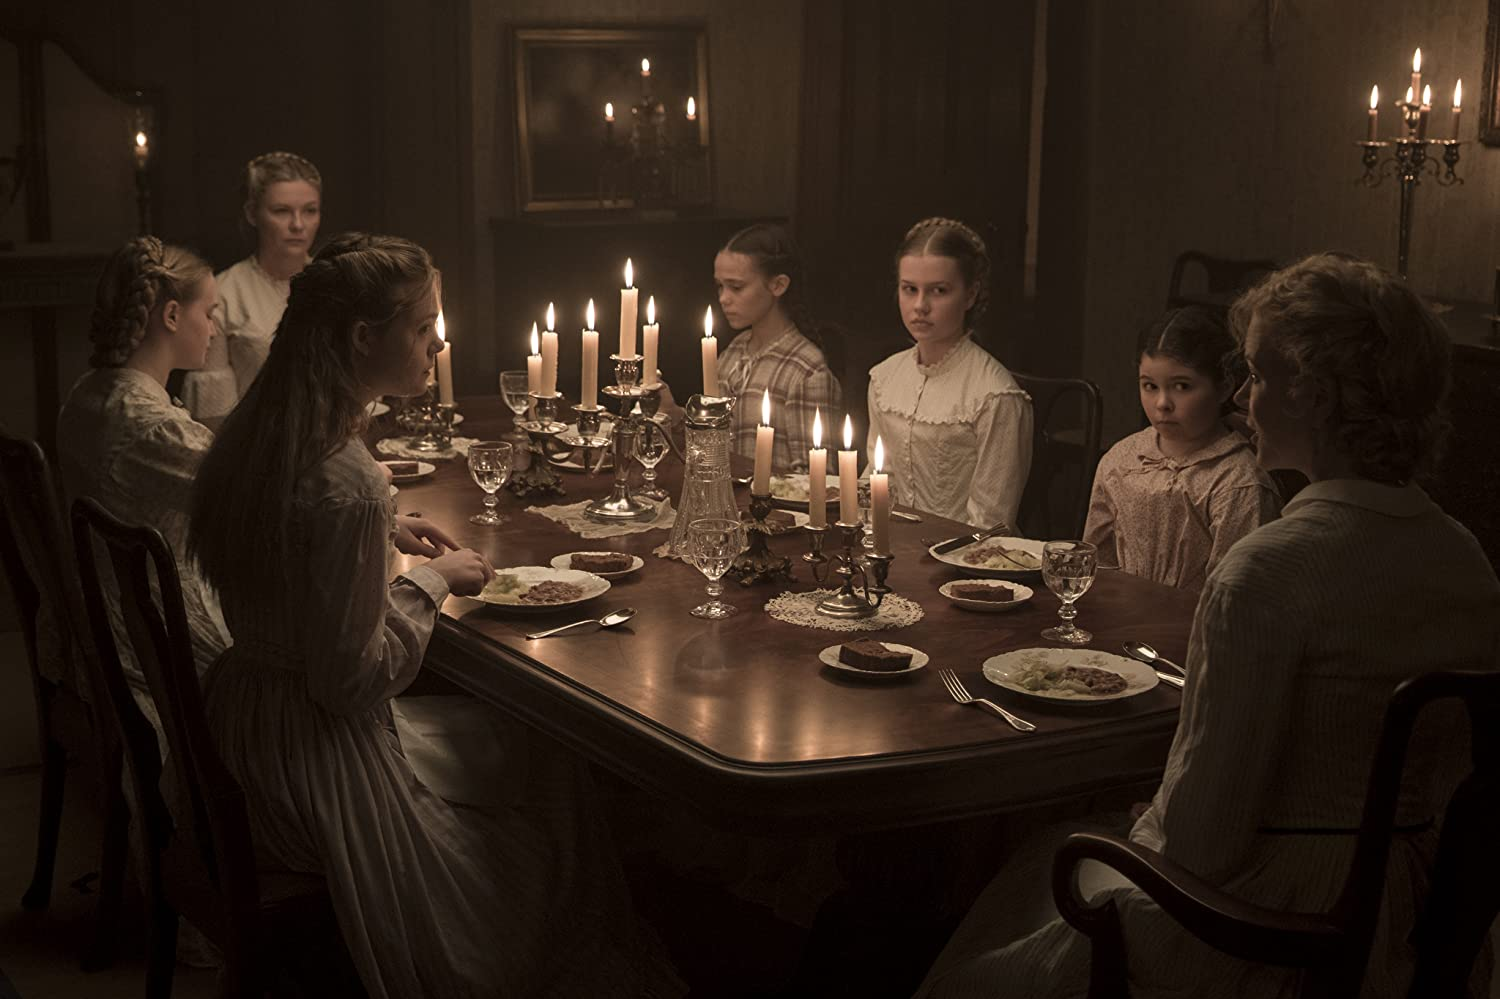 Nicole Kidman, Kirsten Dunst, Elle Fanning, Angourie Rice, Oona Laurence, Addison Riecke, and Emma Howard in The Beguiled (2017)